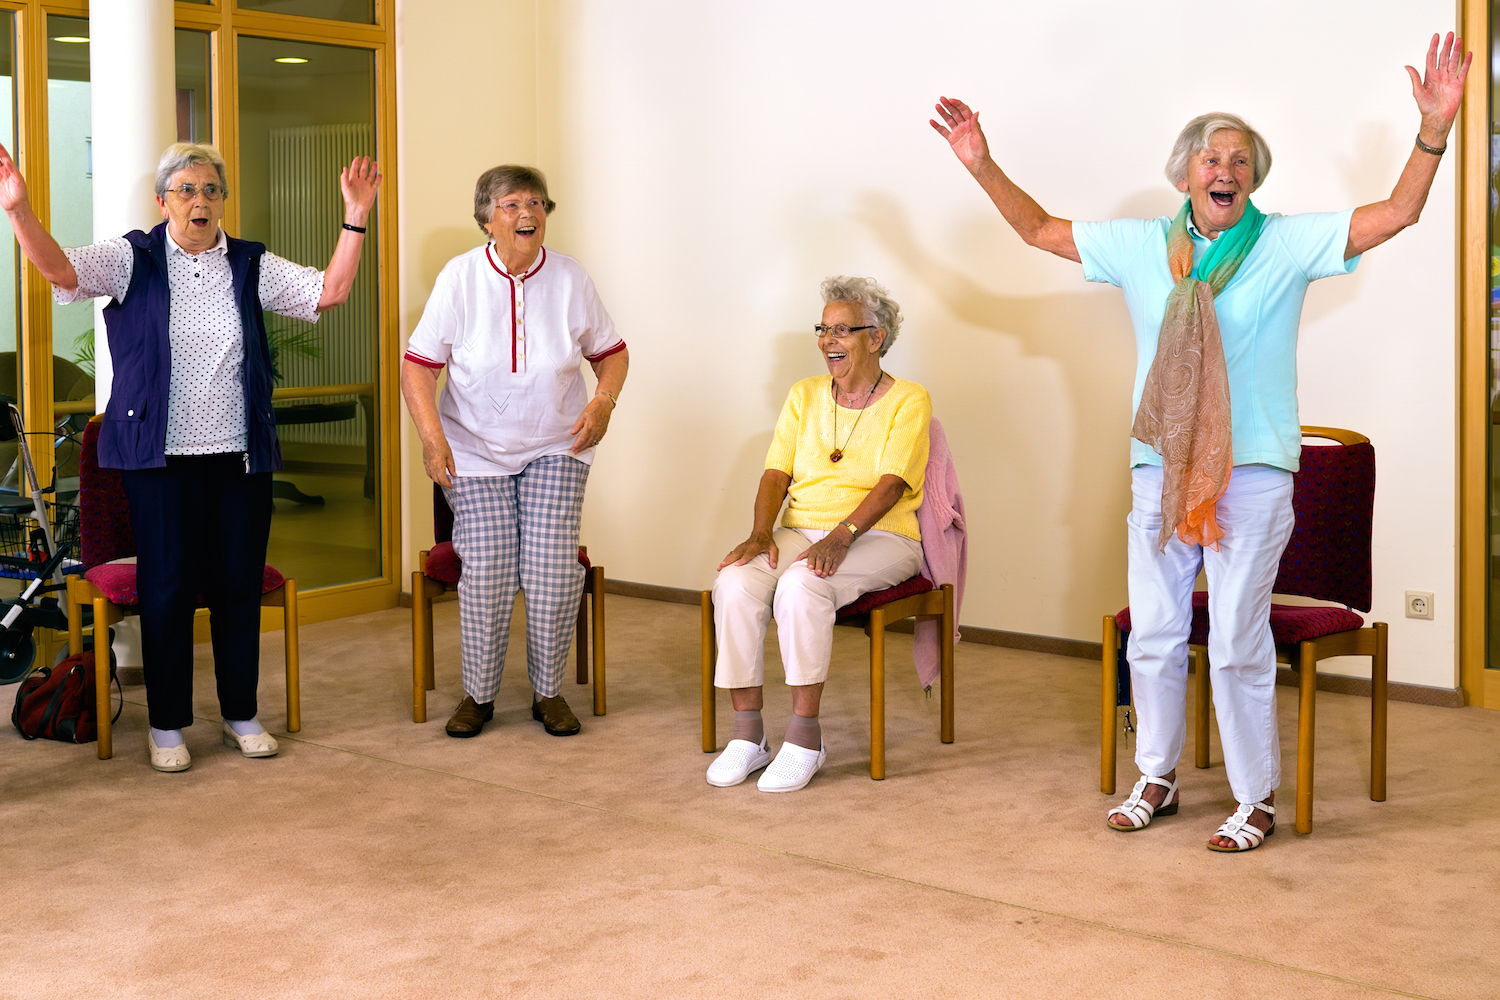 singing-activities-for-care-homes